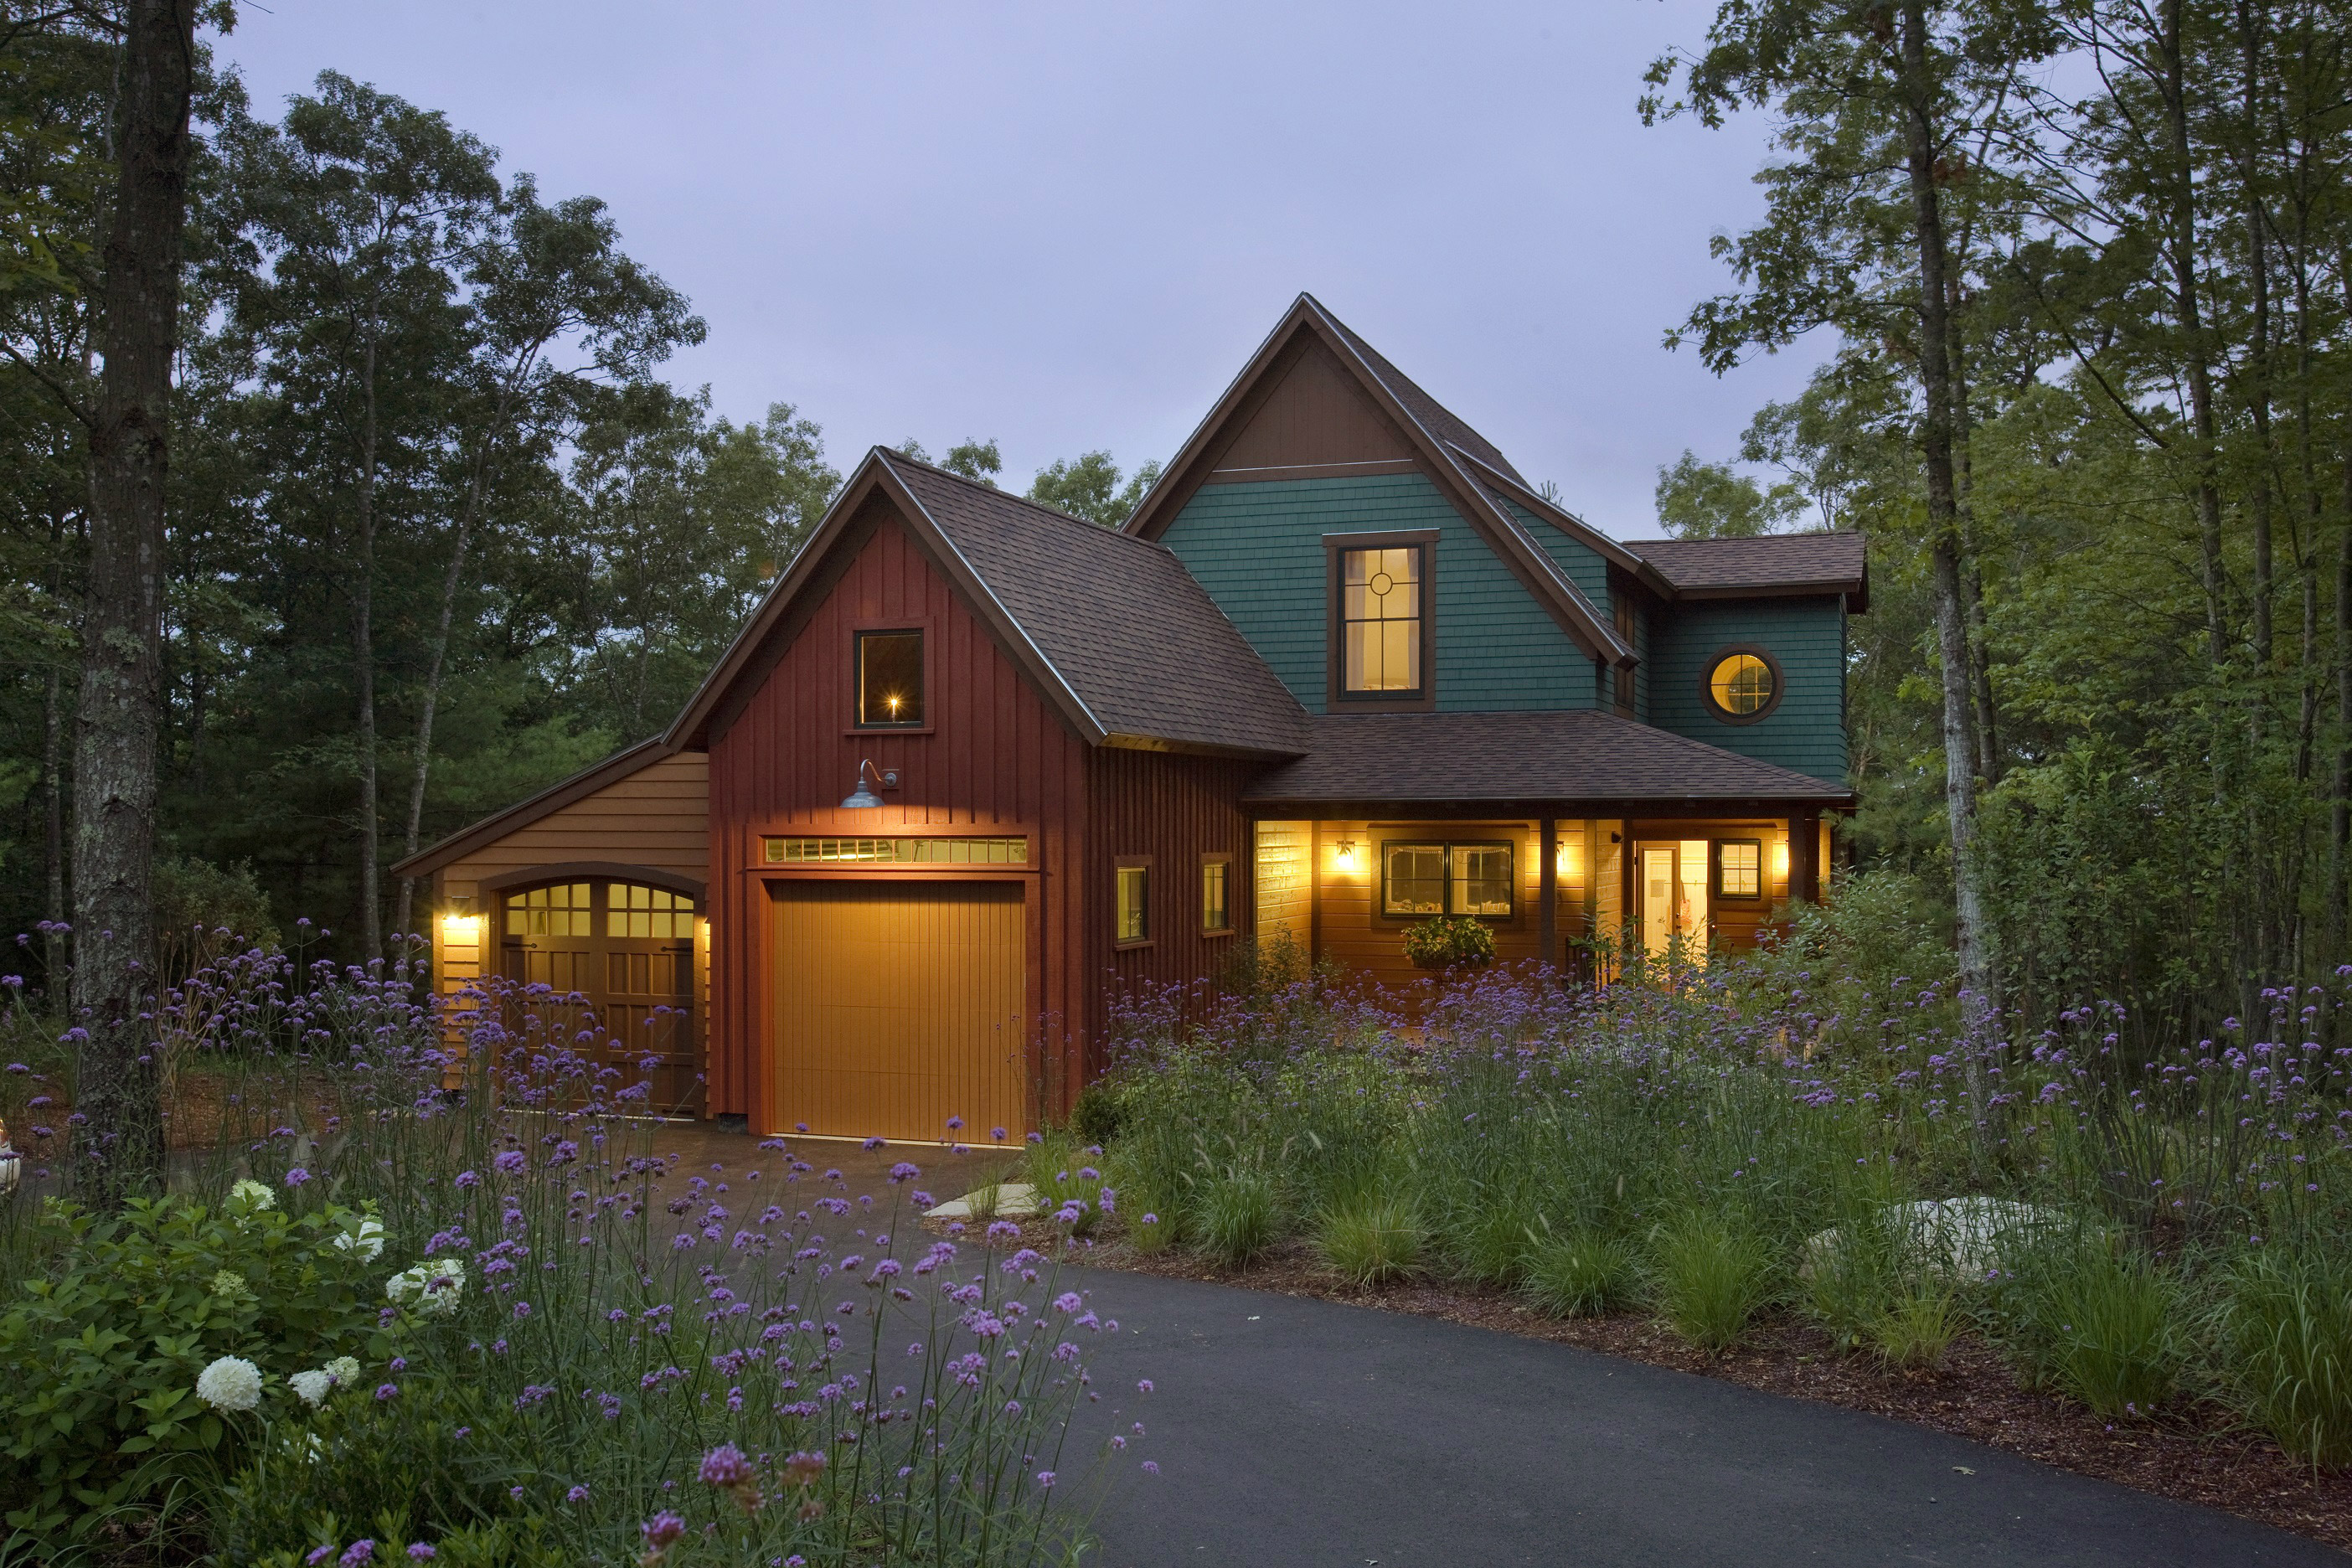 Hickorywood Cottages by Barefoot Cottage Company